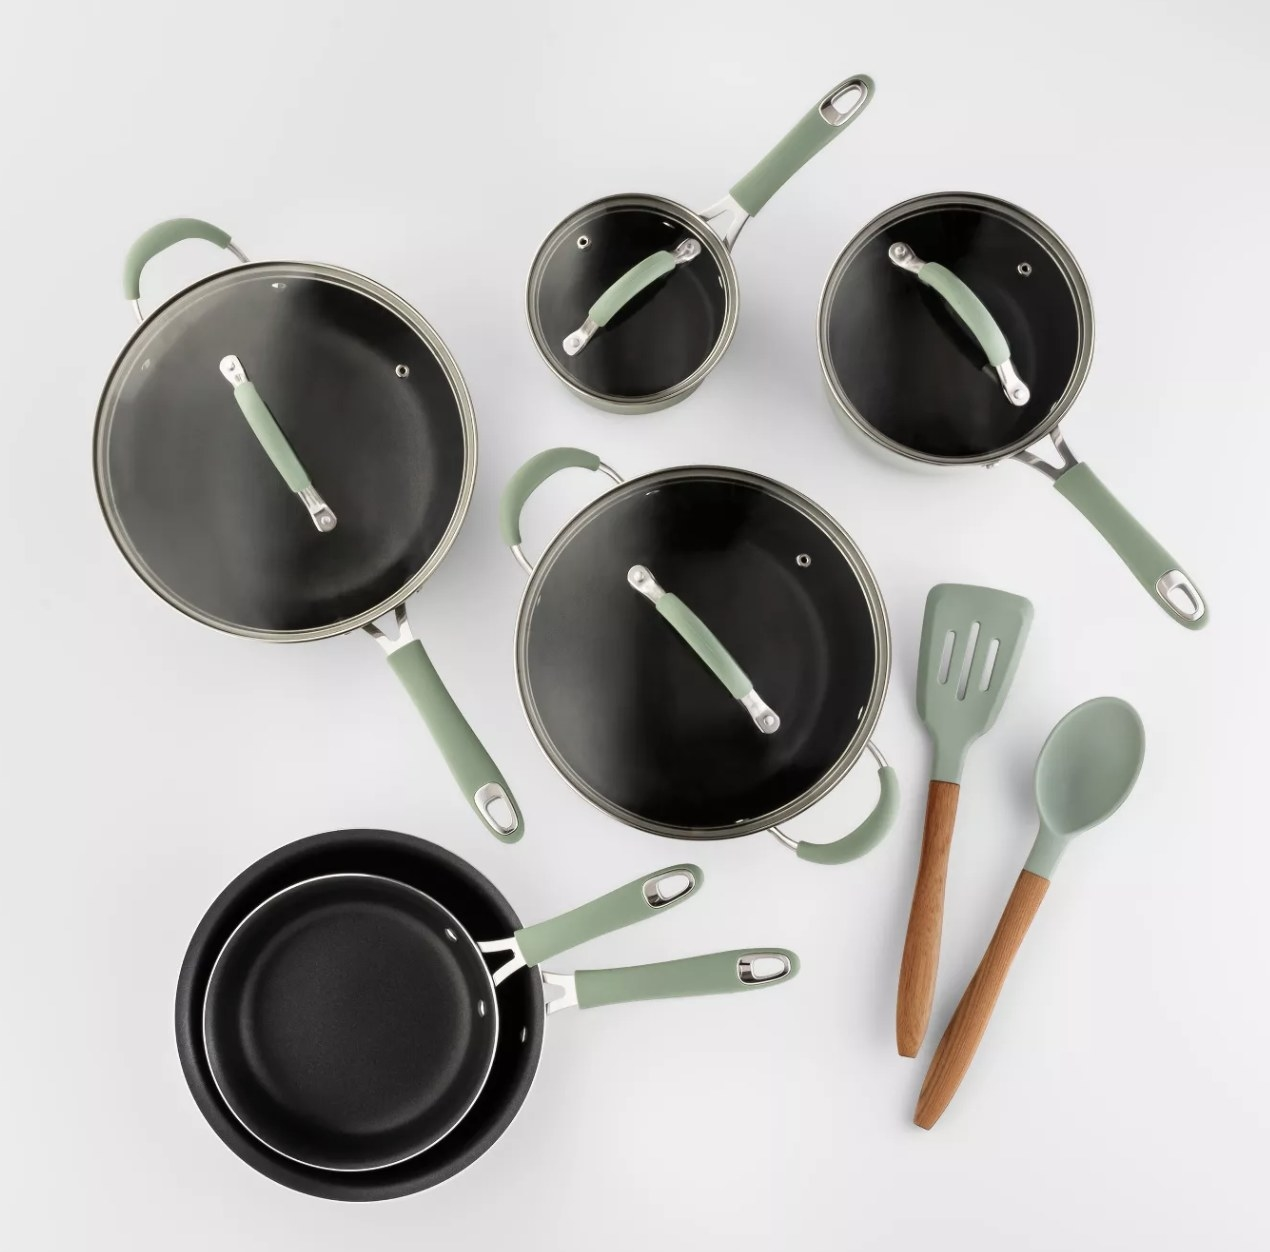 a 12 piece set of mint-handled aluminum pots